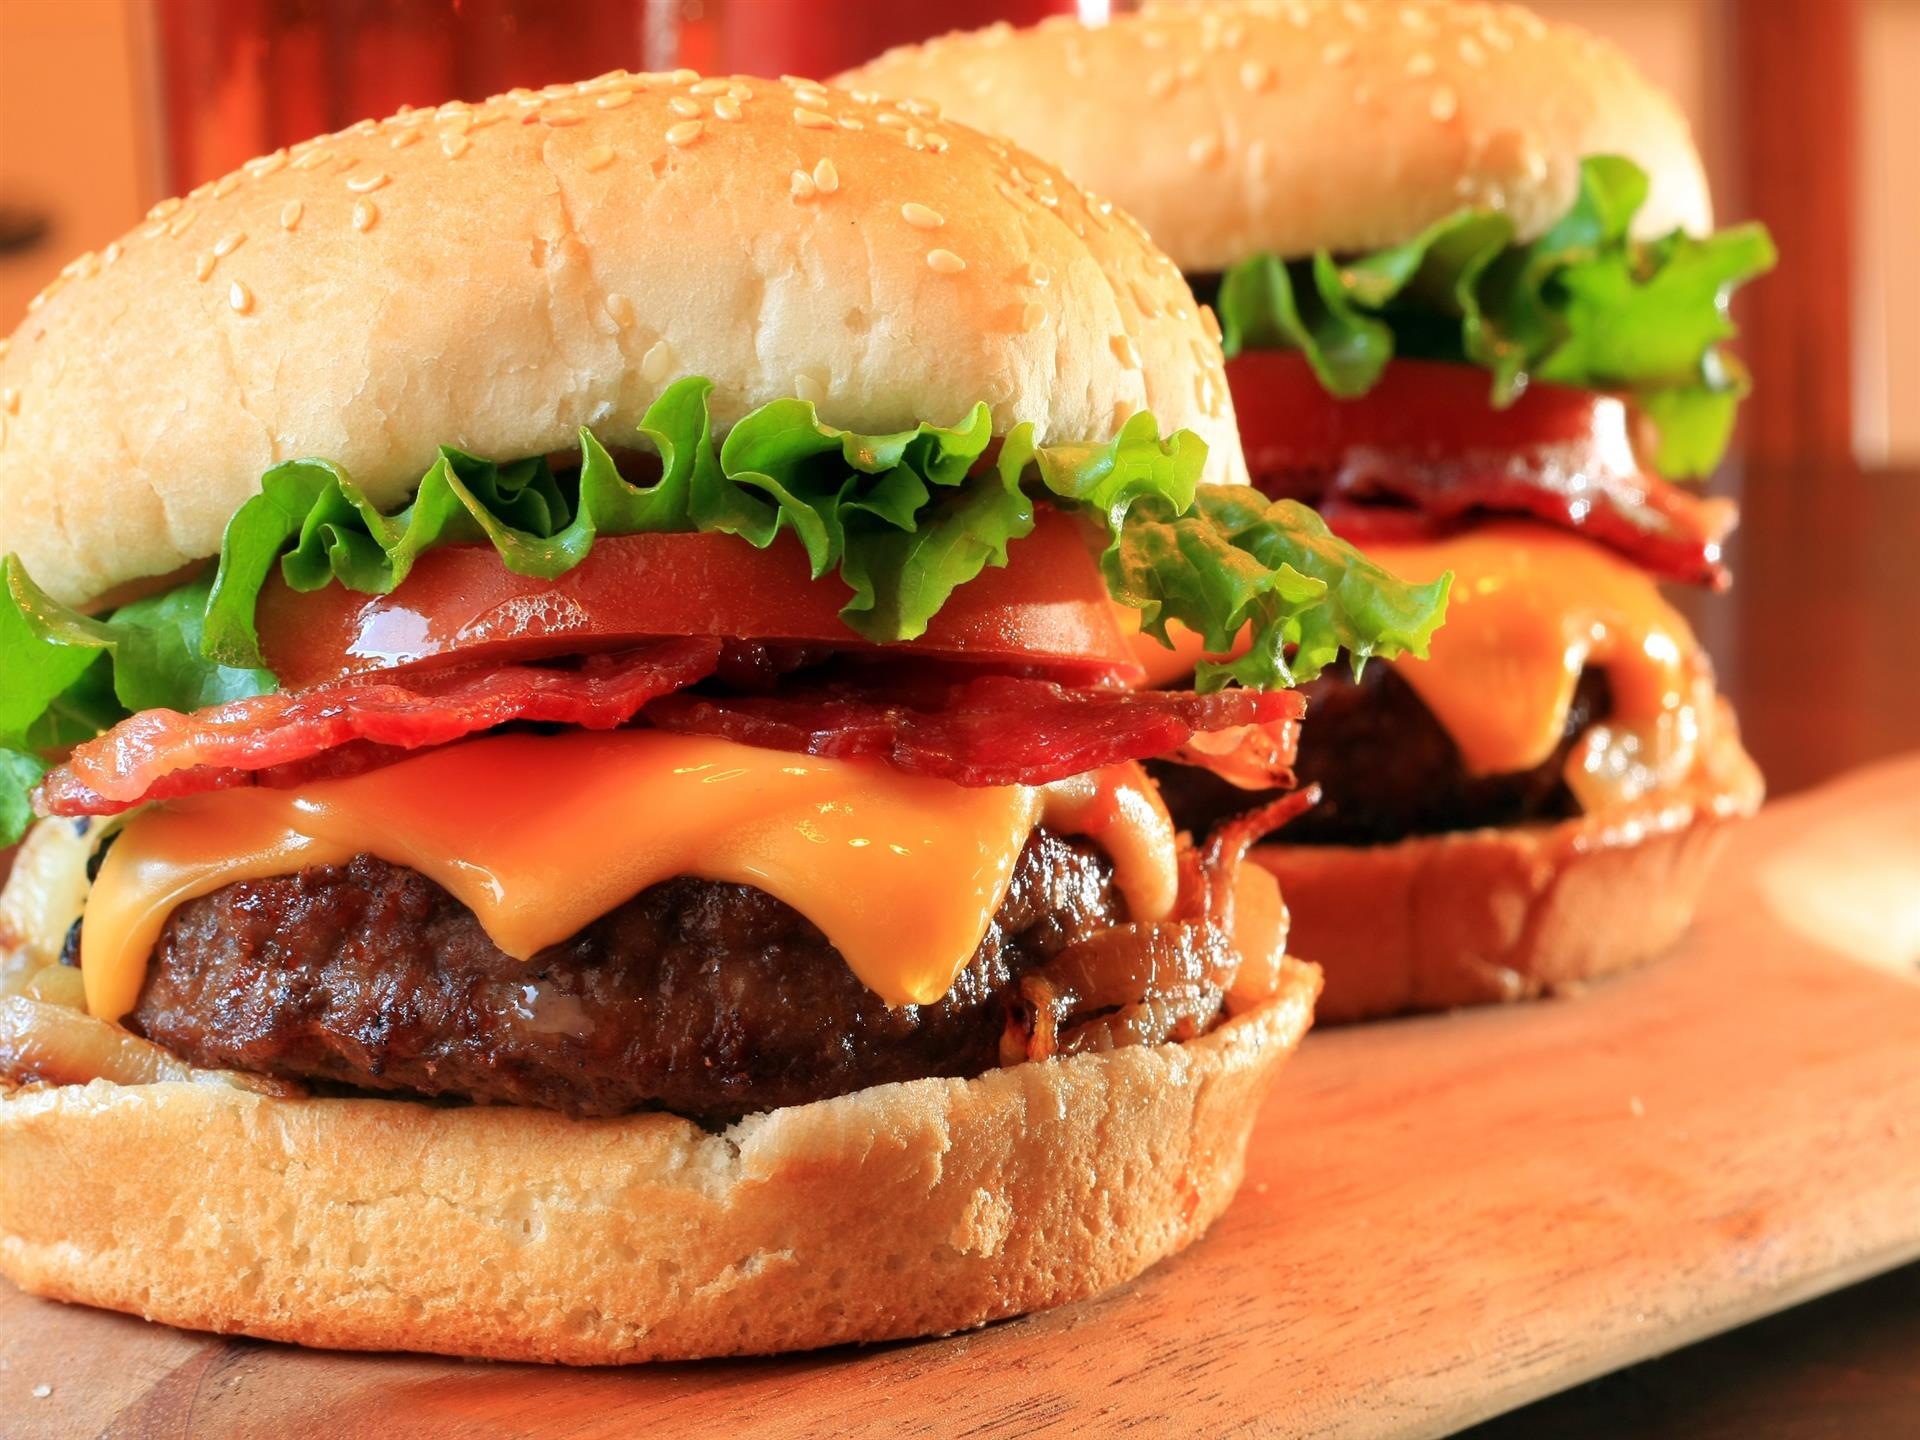 Cheeseburgers with bacon, lettuce, tomato on bun on counter